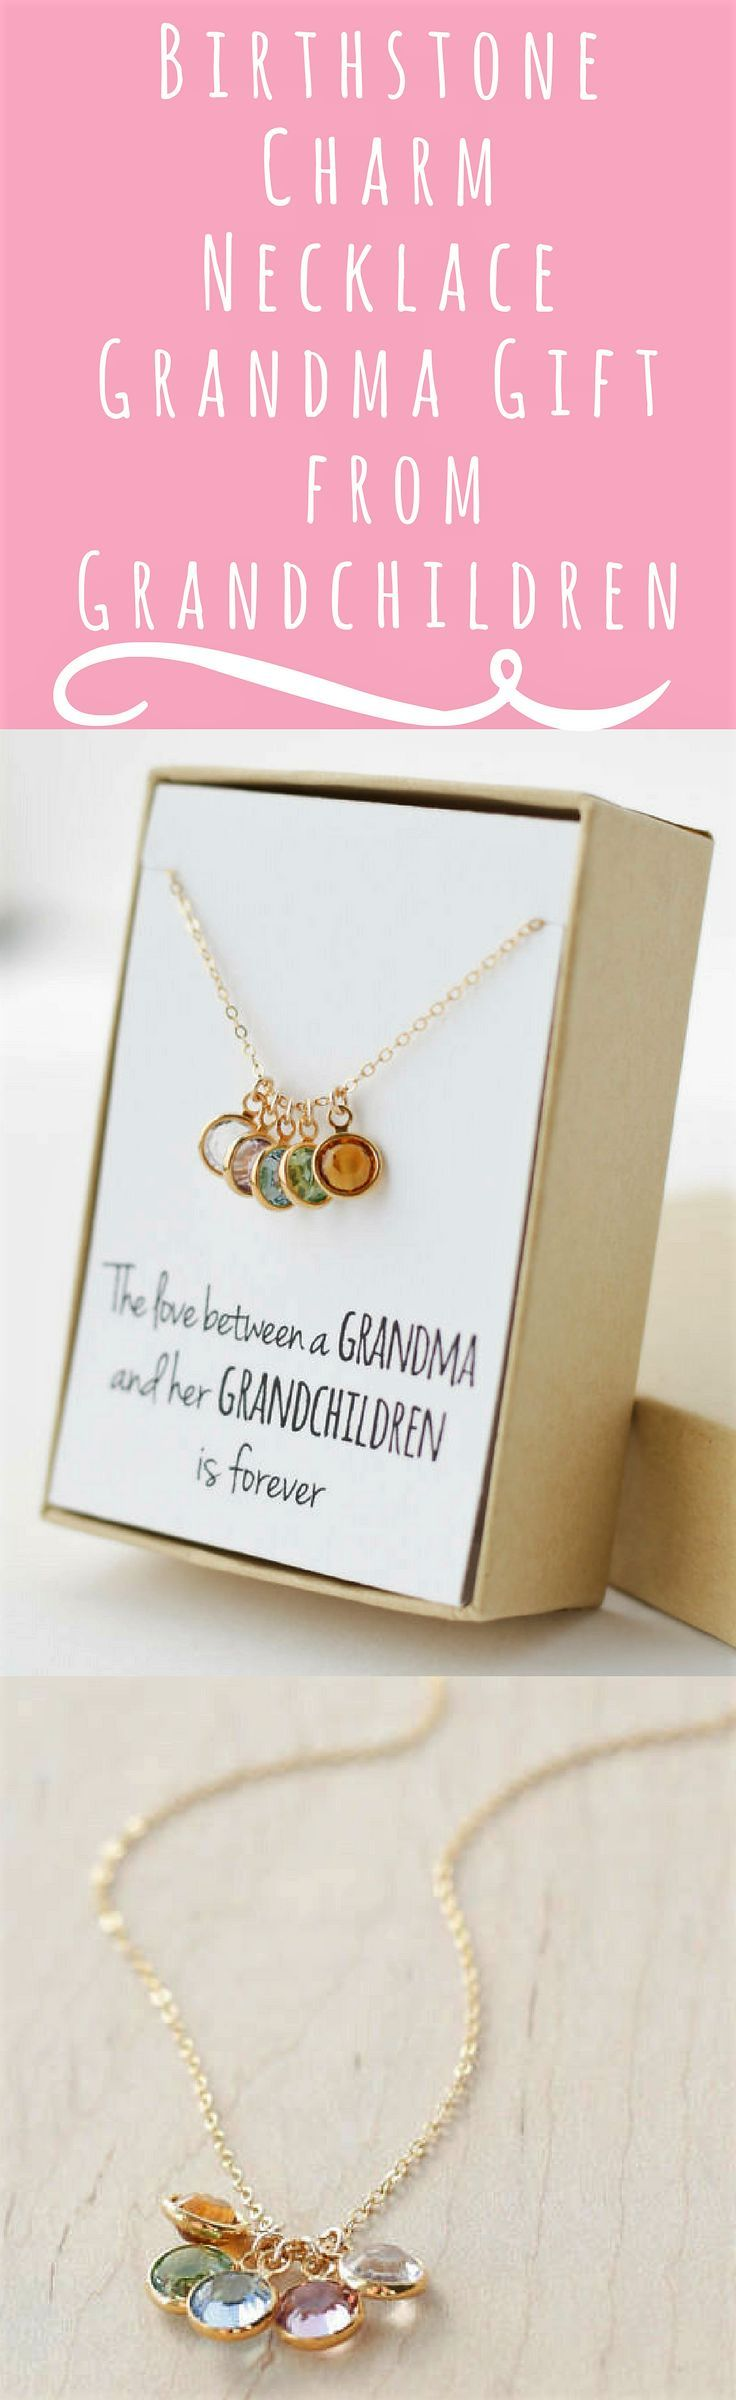 This is a perfect gift idea for birthday or Mother's Day! Birthstone Charm Necklace - Grandma Gift - Gifts for Grandma - Grandmother Gift - Grandmother Necklace - Grandma Gift from Grandchildren #grandma #grandmother #grandmothergift #birthstone #birthstonenecklace #momlife #grandchild #queen #etsy #affiliate